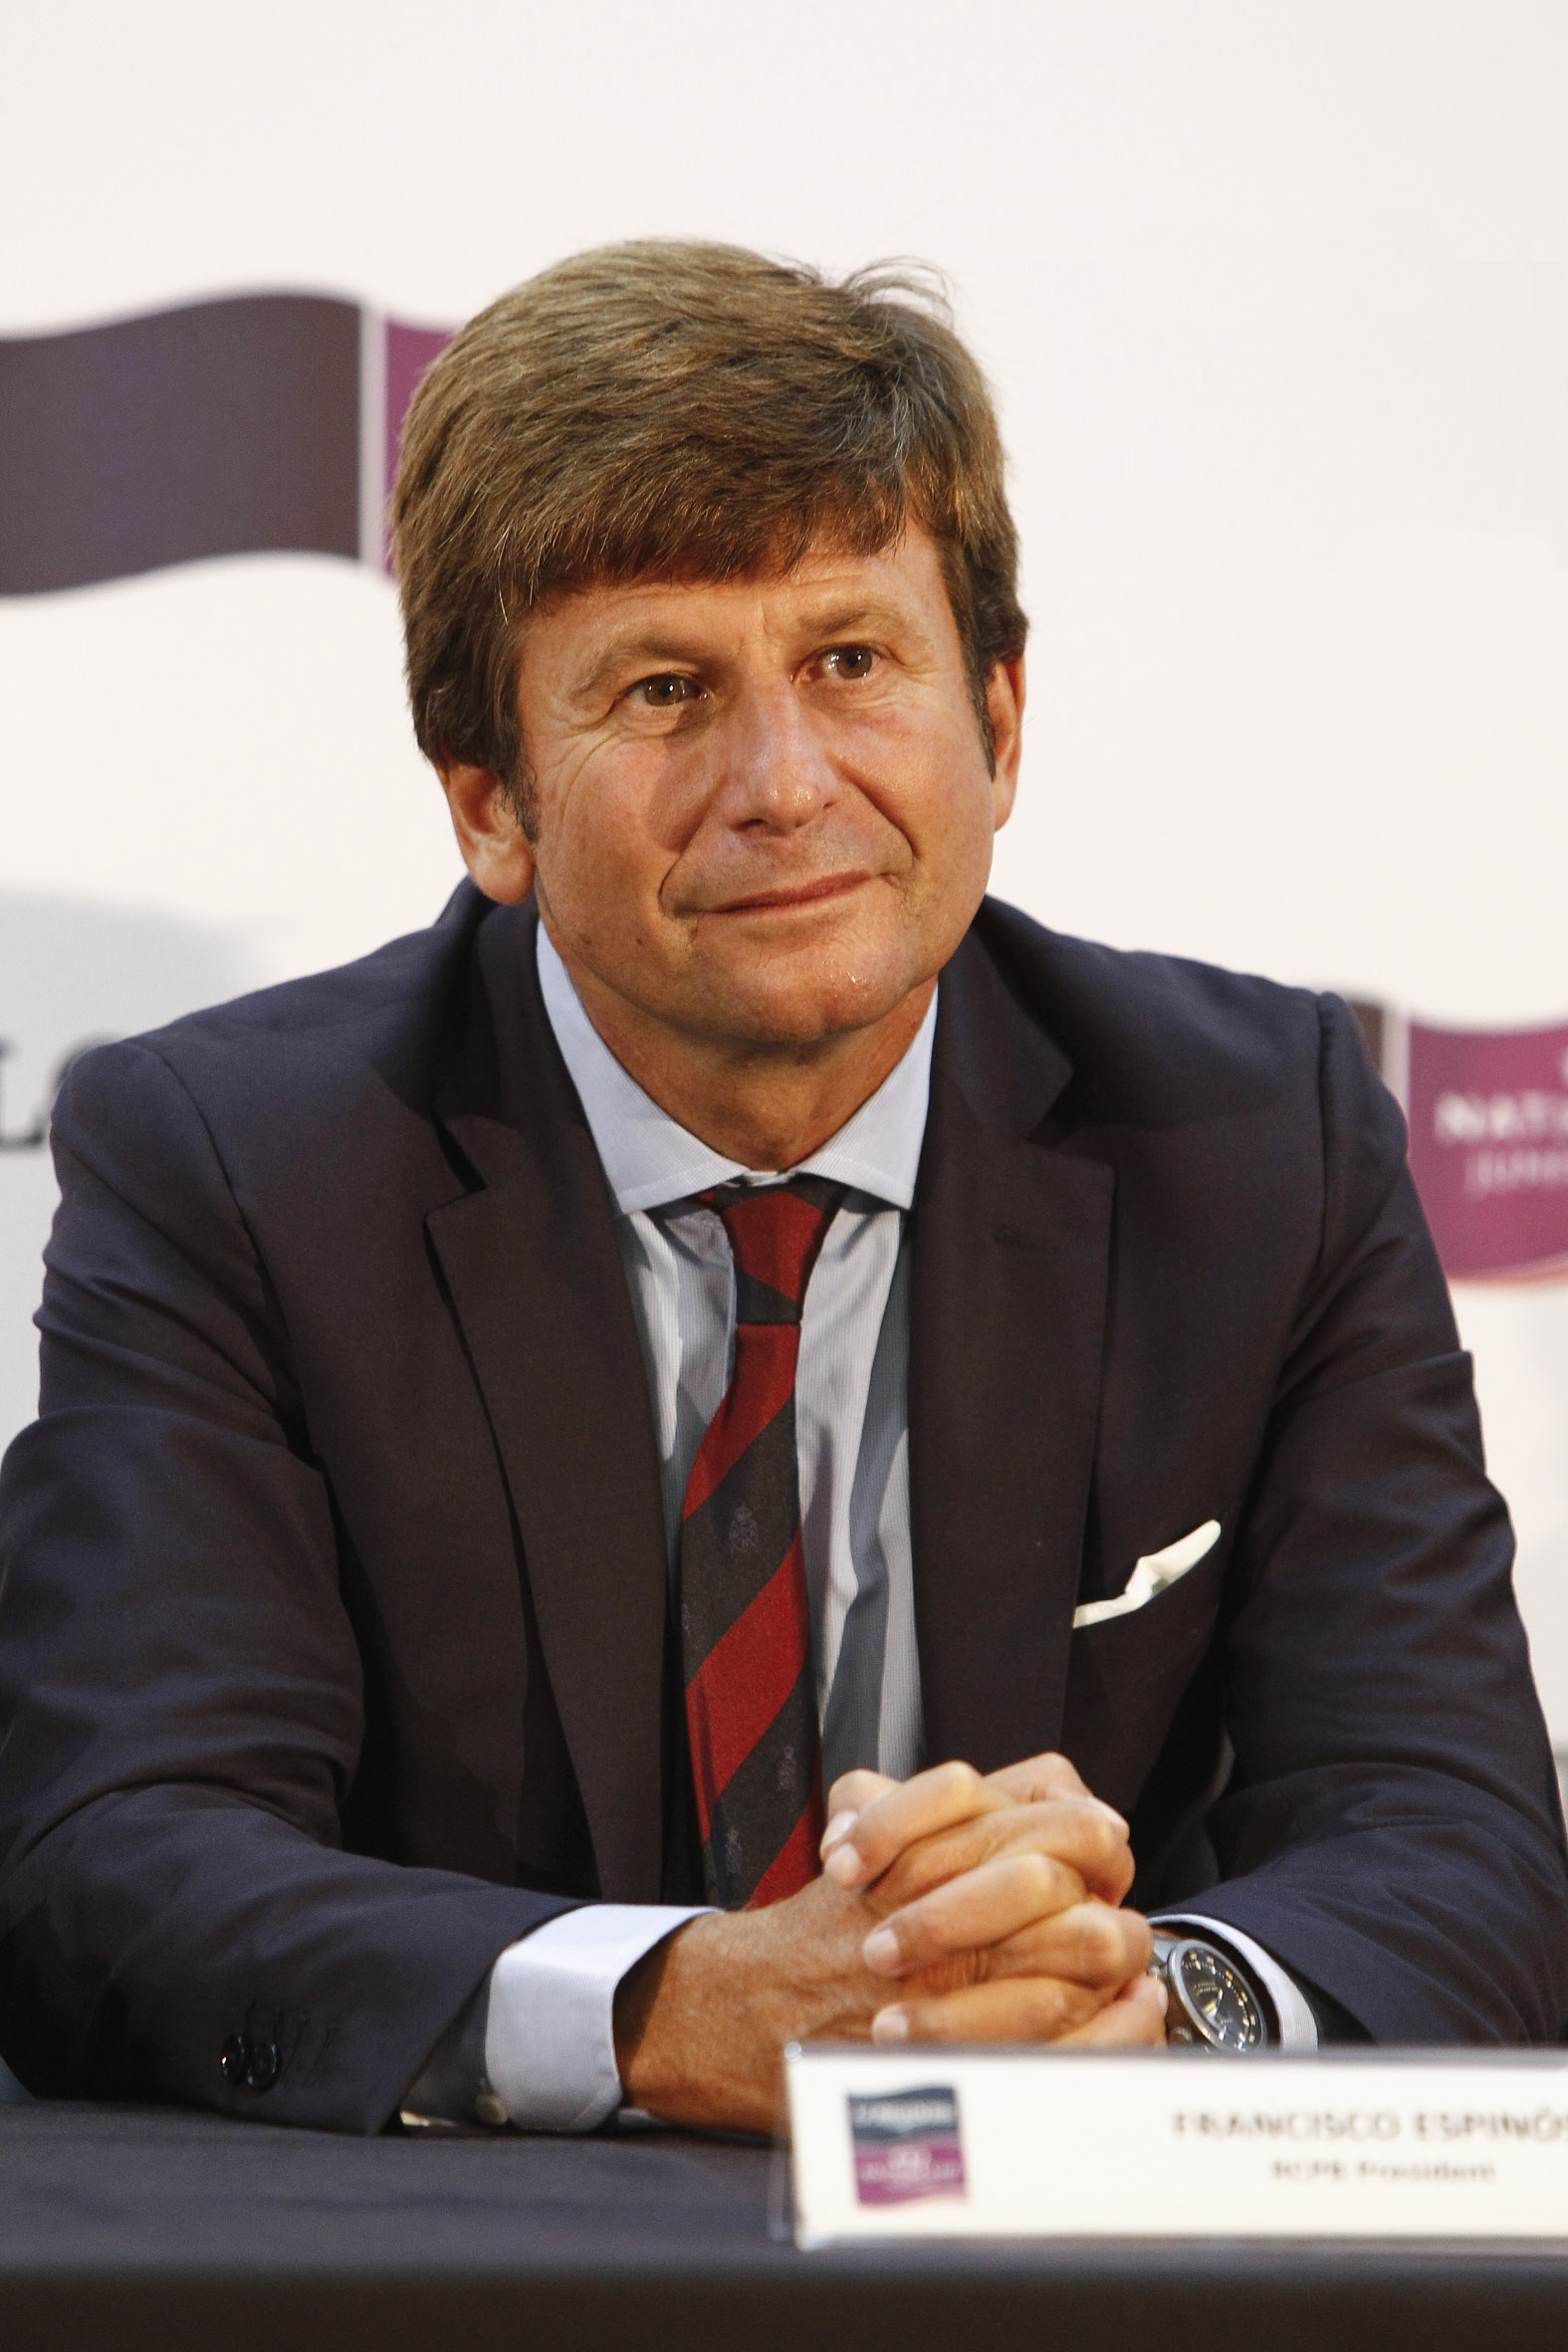 Curro Espinós de Pascual, re-elected as Real Polo Club of Barcelona President